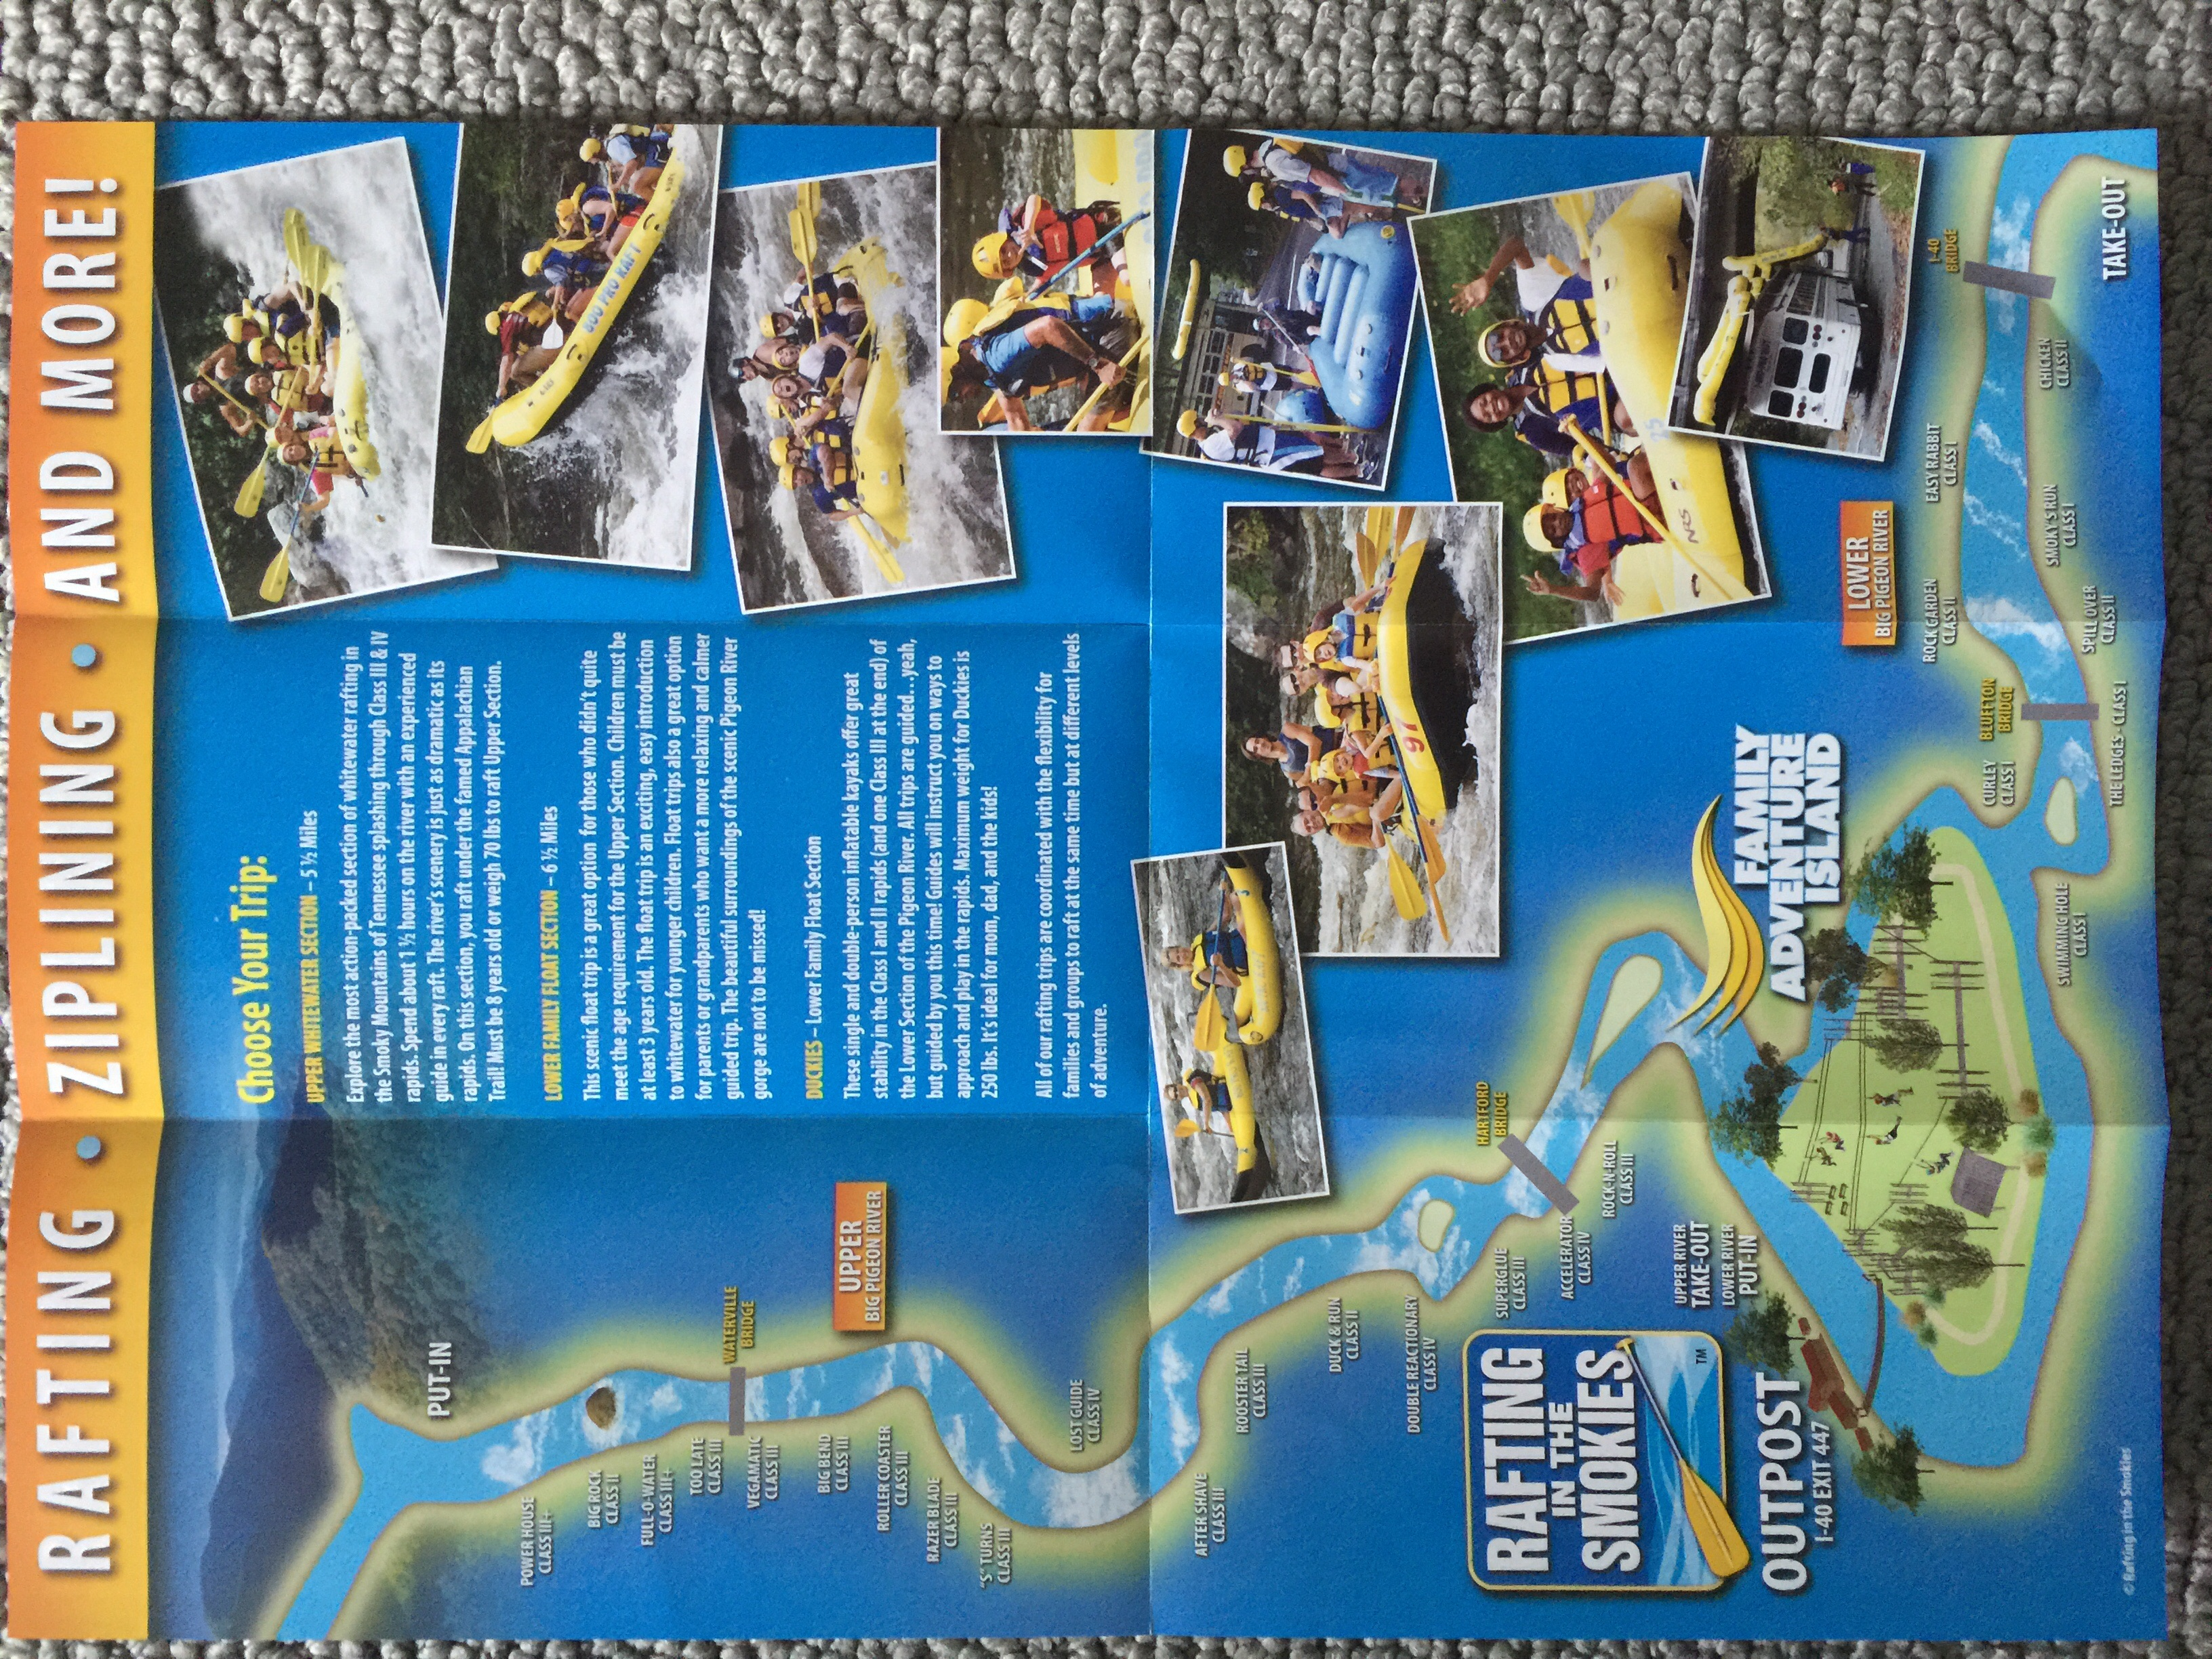 A Map of the River, Includig Family Adventure Island